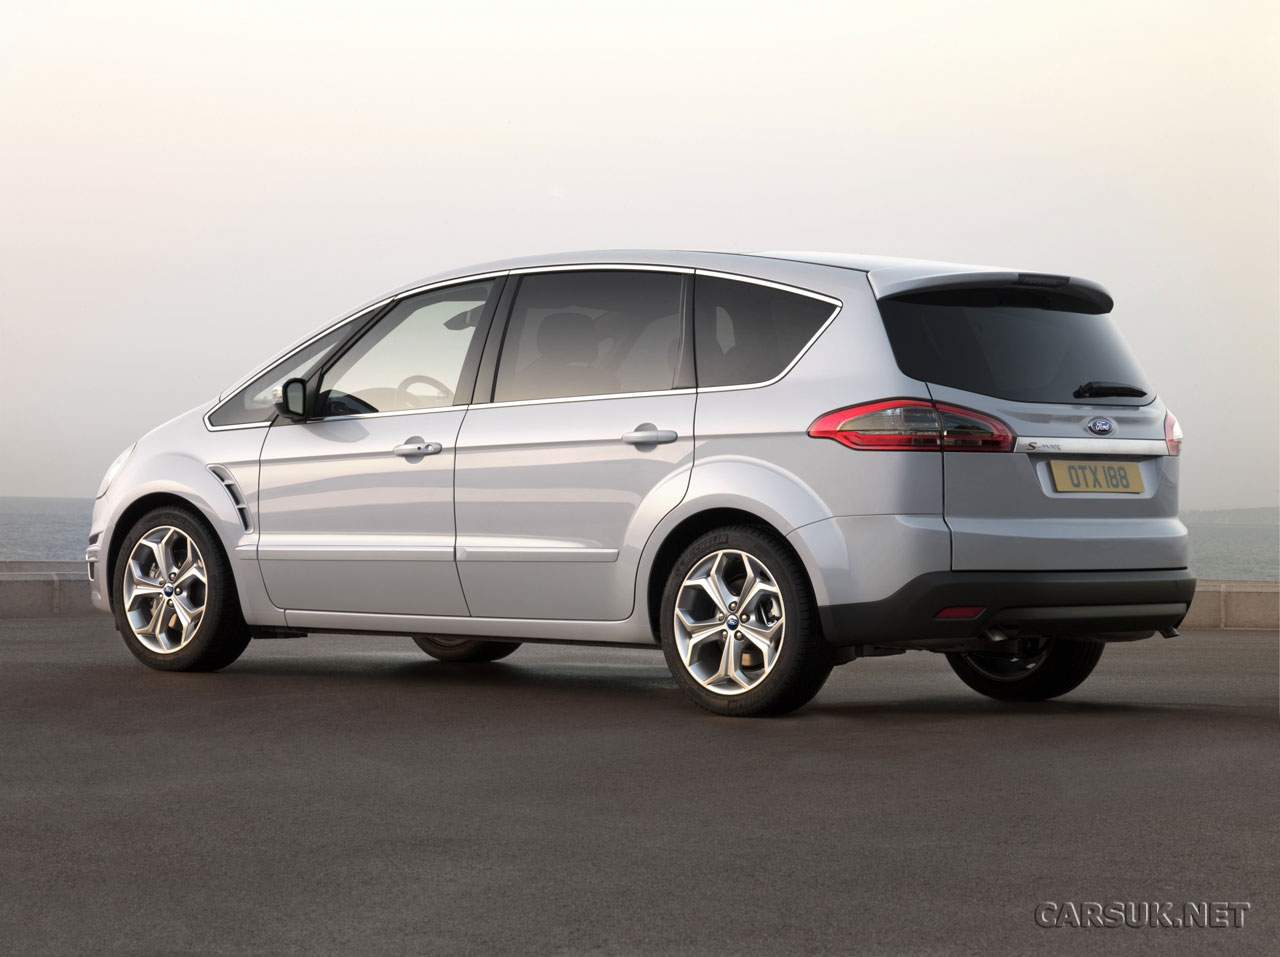 ford s max 2010 and ford galaxy 2010 revealed. Black Bedroom Furniture Sets. Home Design Ideas